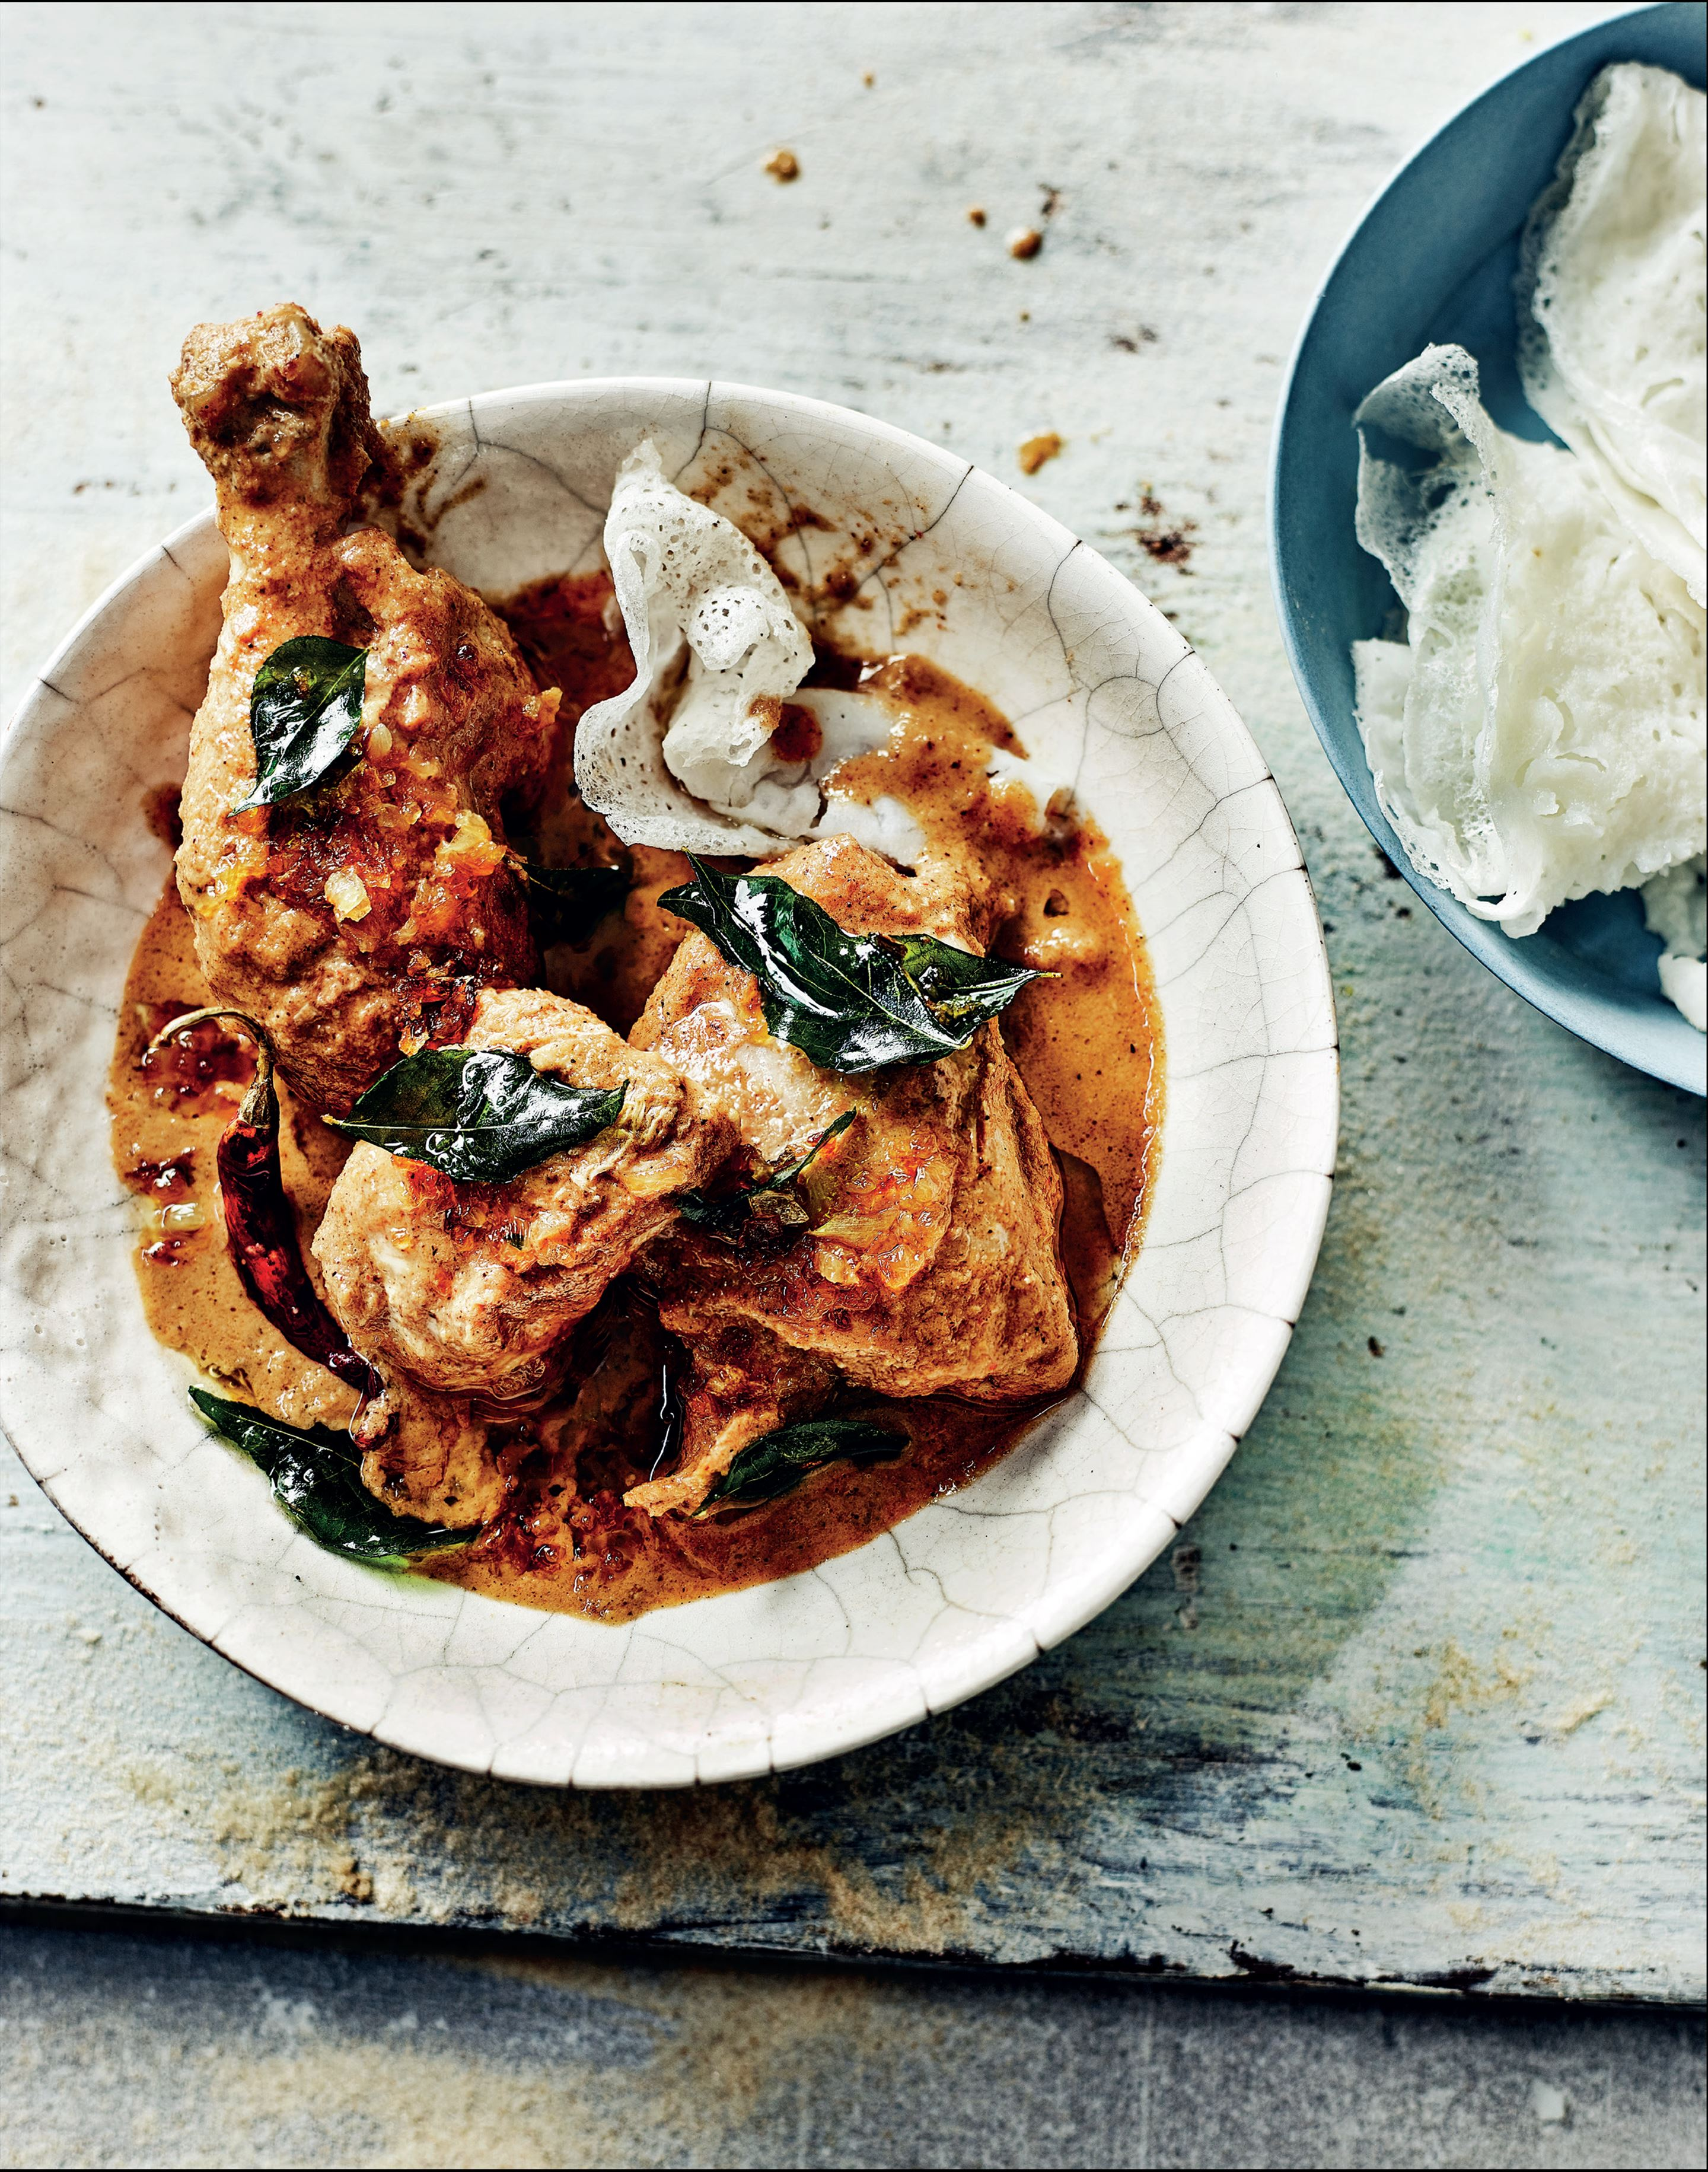 Mangalorean chicken curry